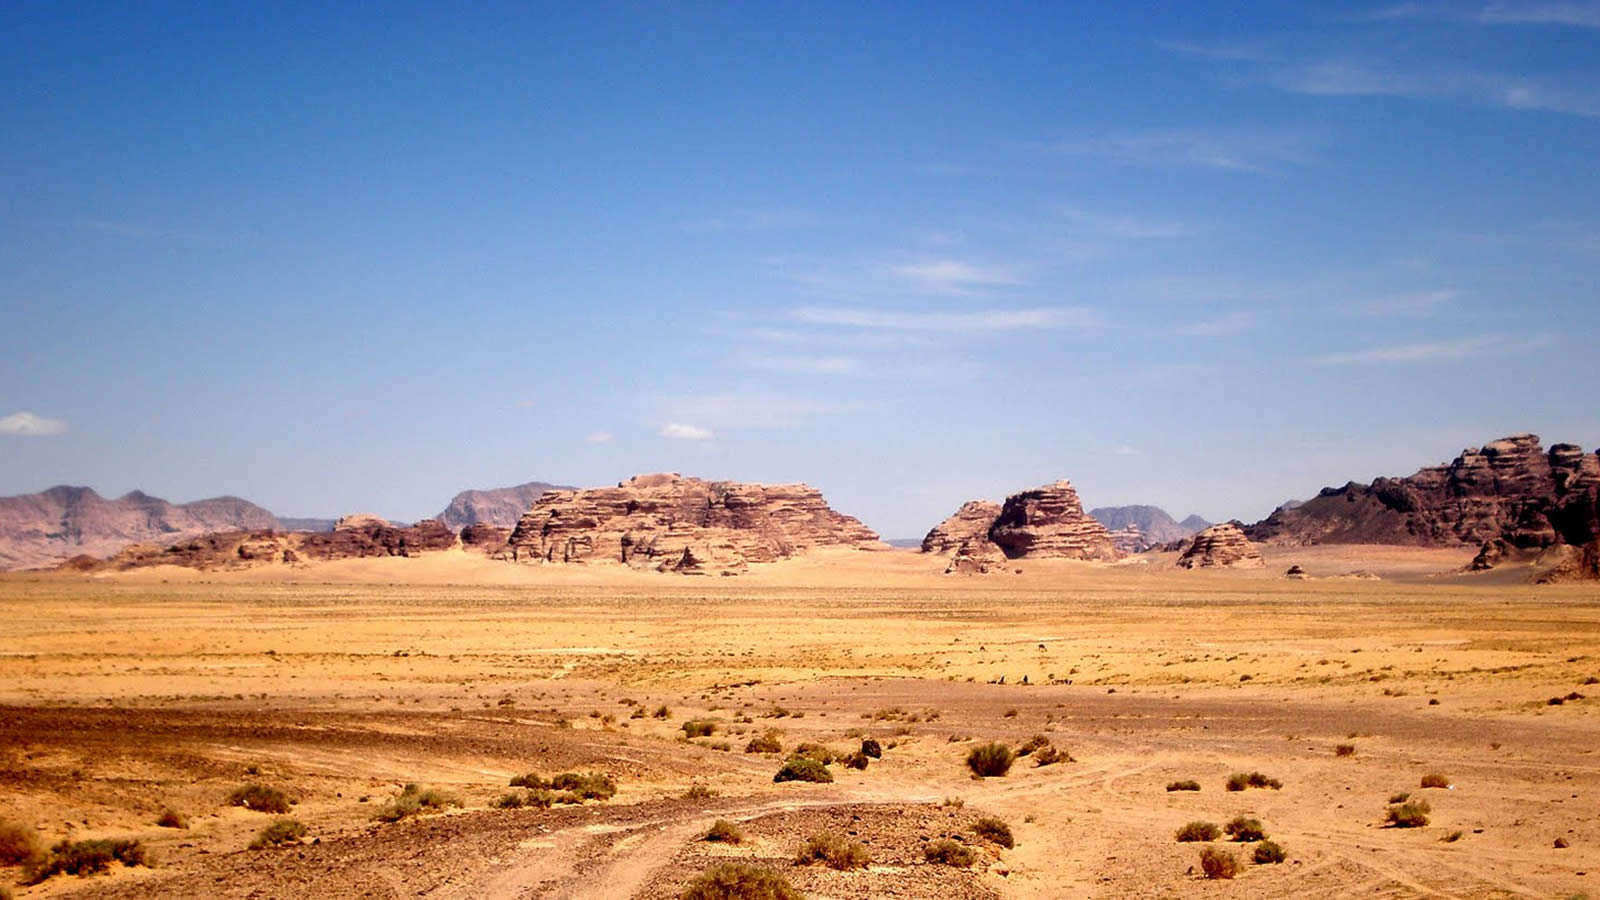 Desert Mountains with Road in Jordan